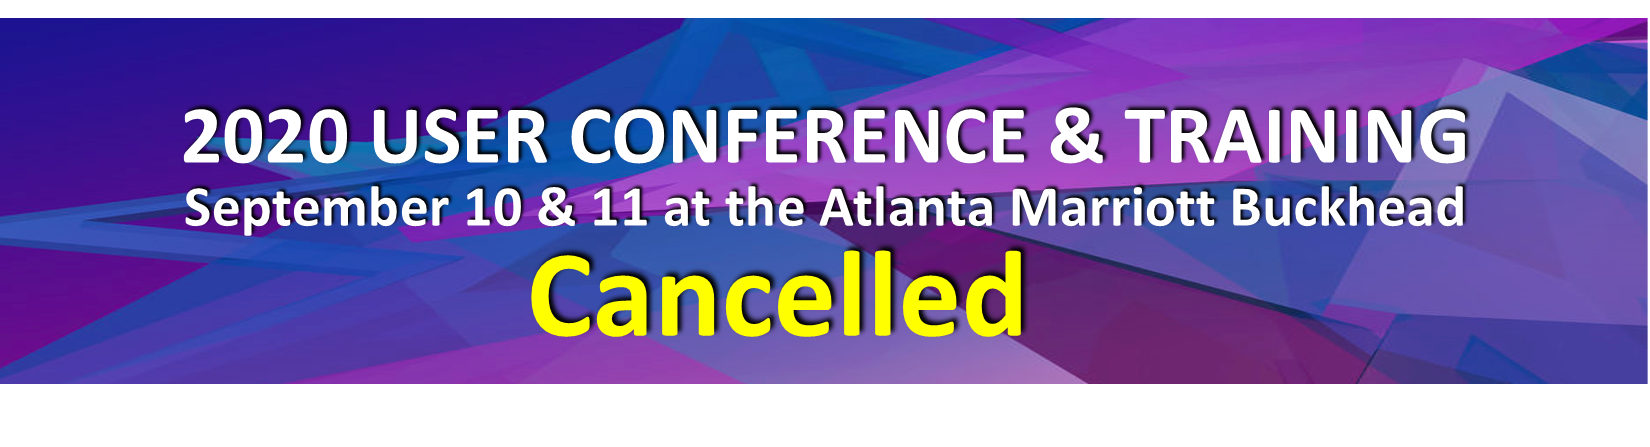 2020 User Conf Cancelled Graphic 2